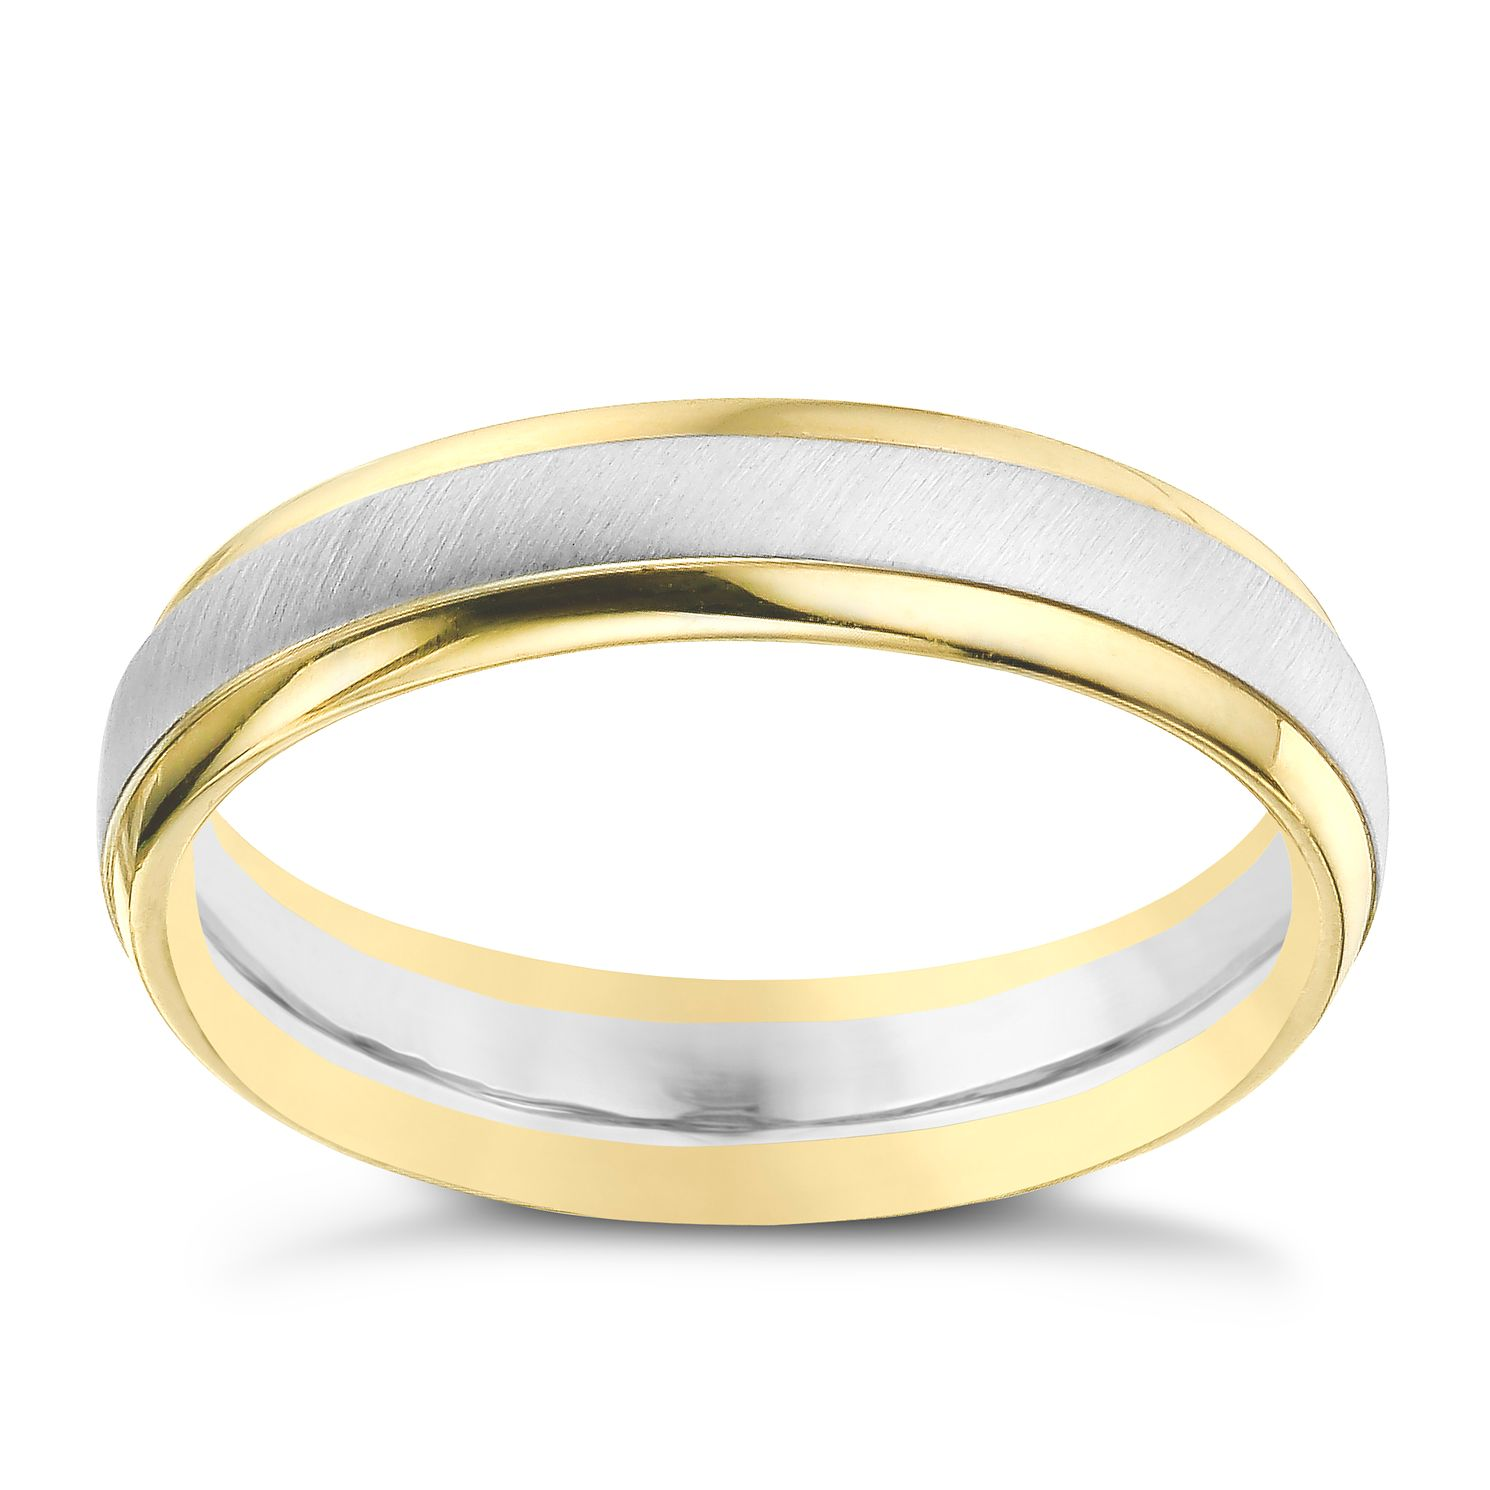 9ct Yellow & White Gold 5mm Matt & Polish Ring - Product number 9289011